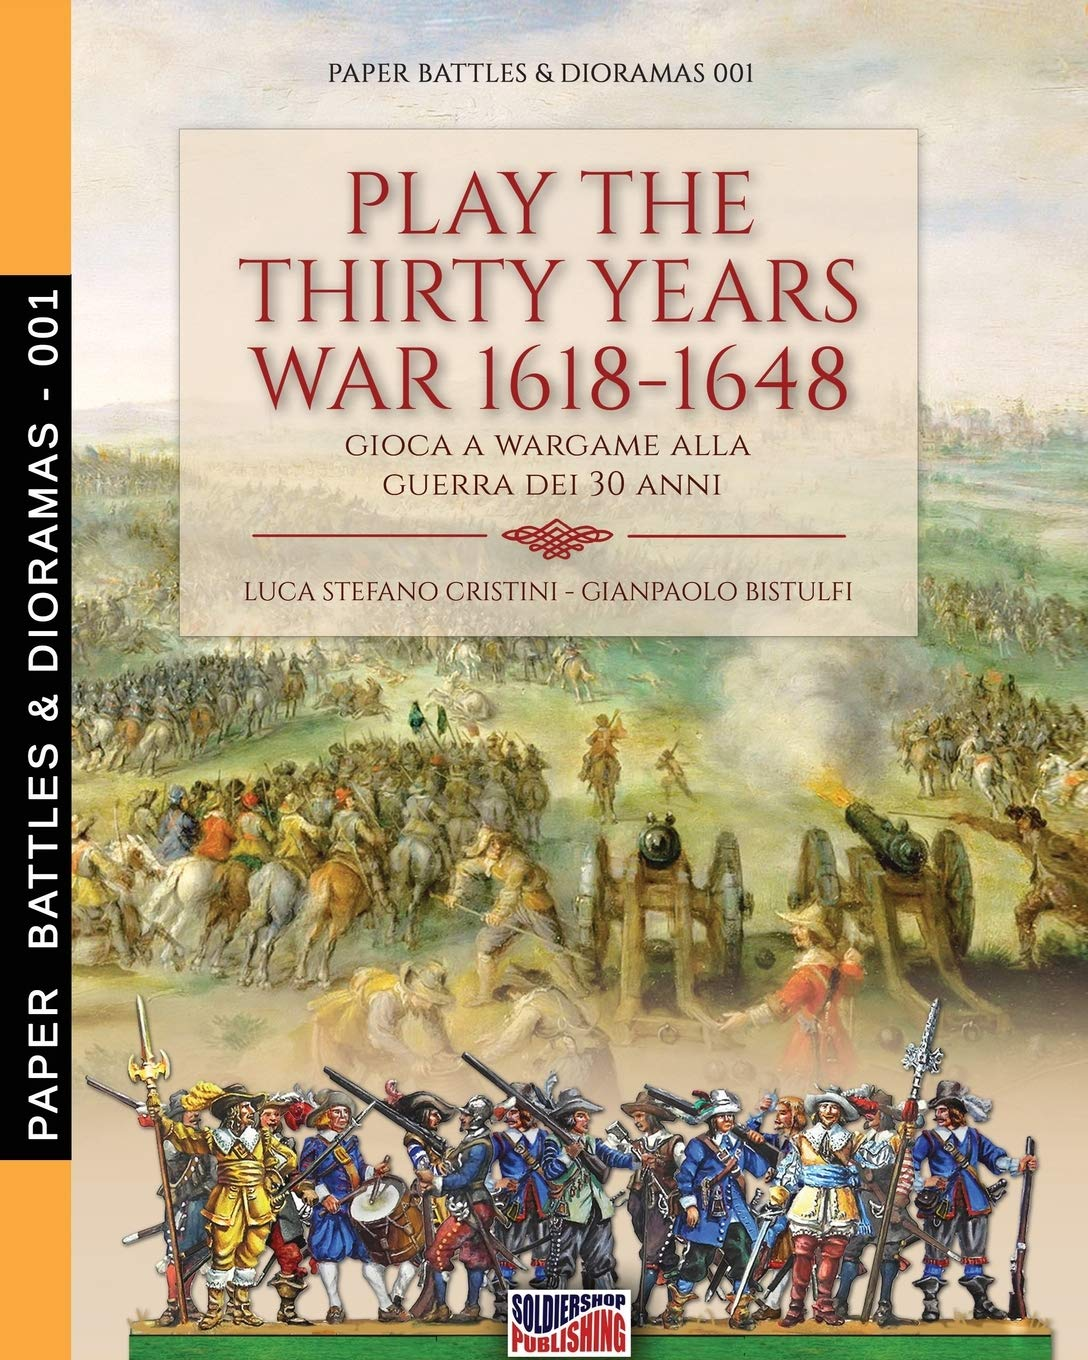 Image OfPlay The Thirty Years War 1618-1648: Gioca A Wargame Alla Guerra Dei 30 Anni